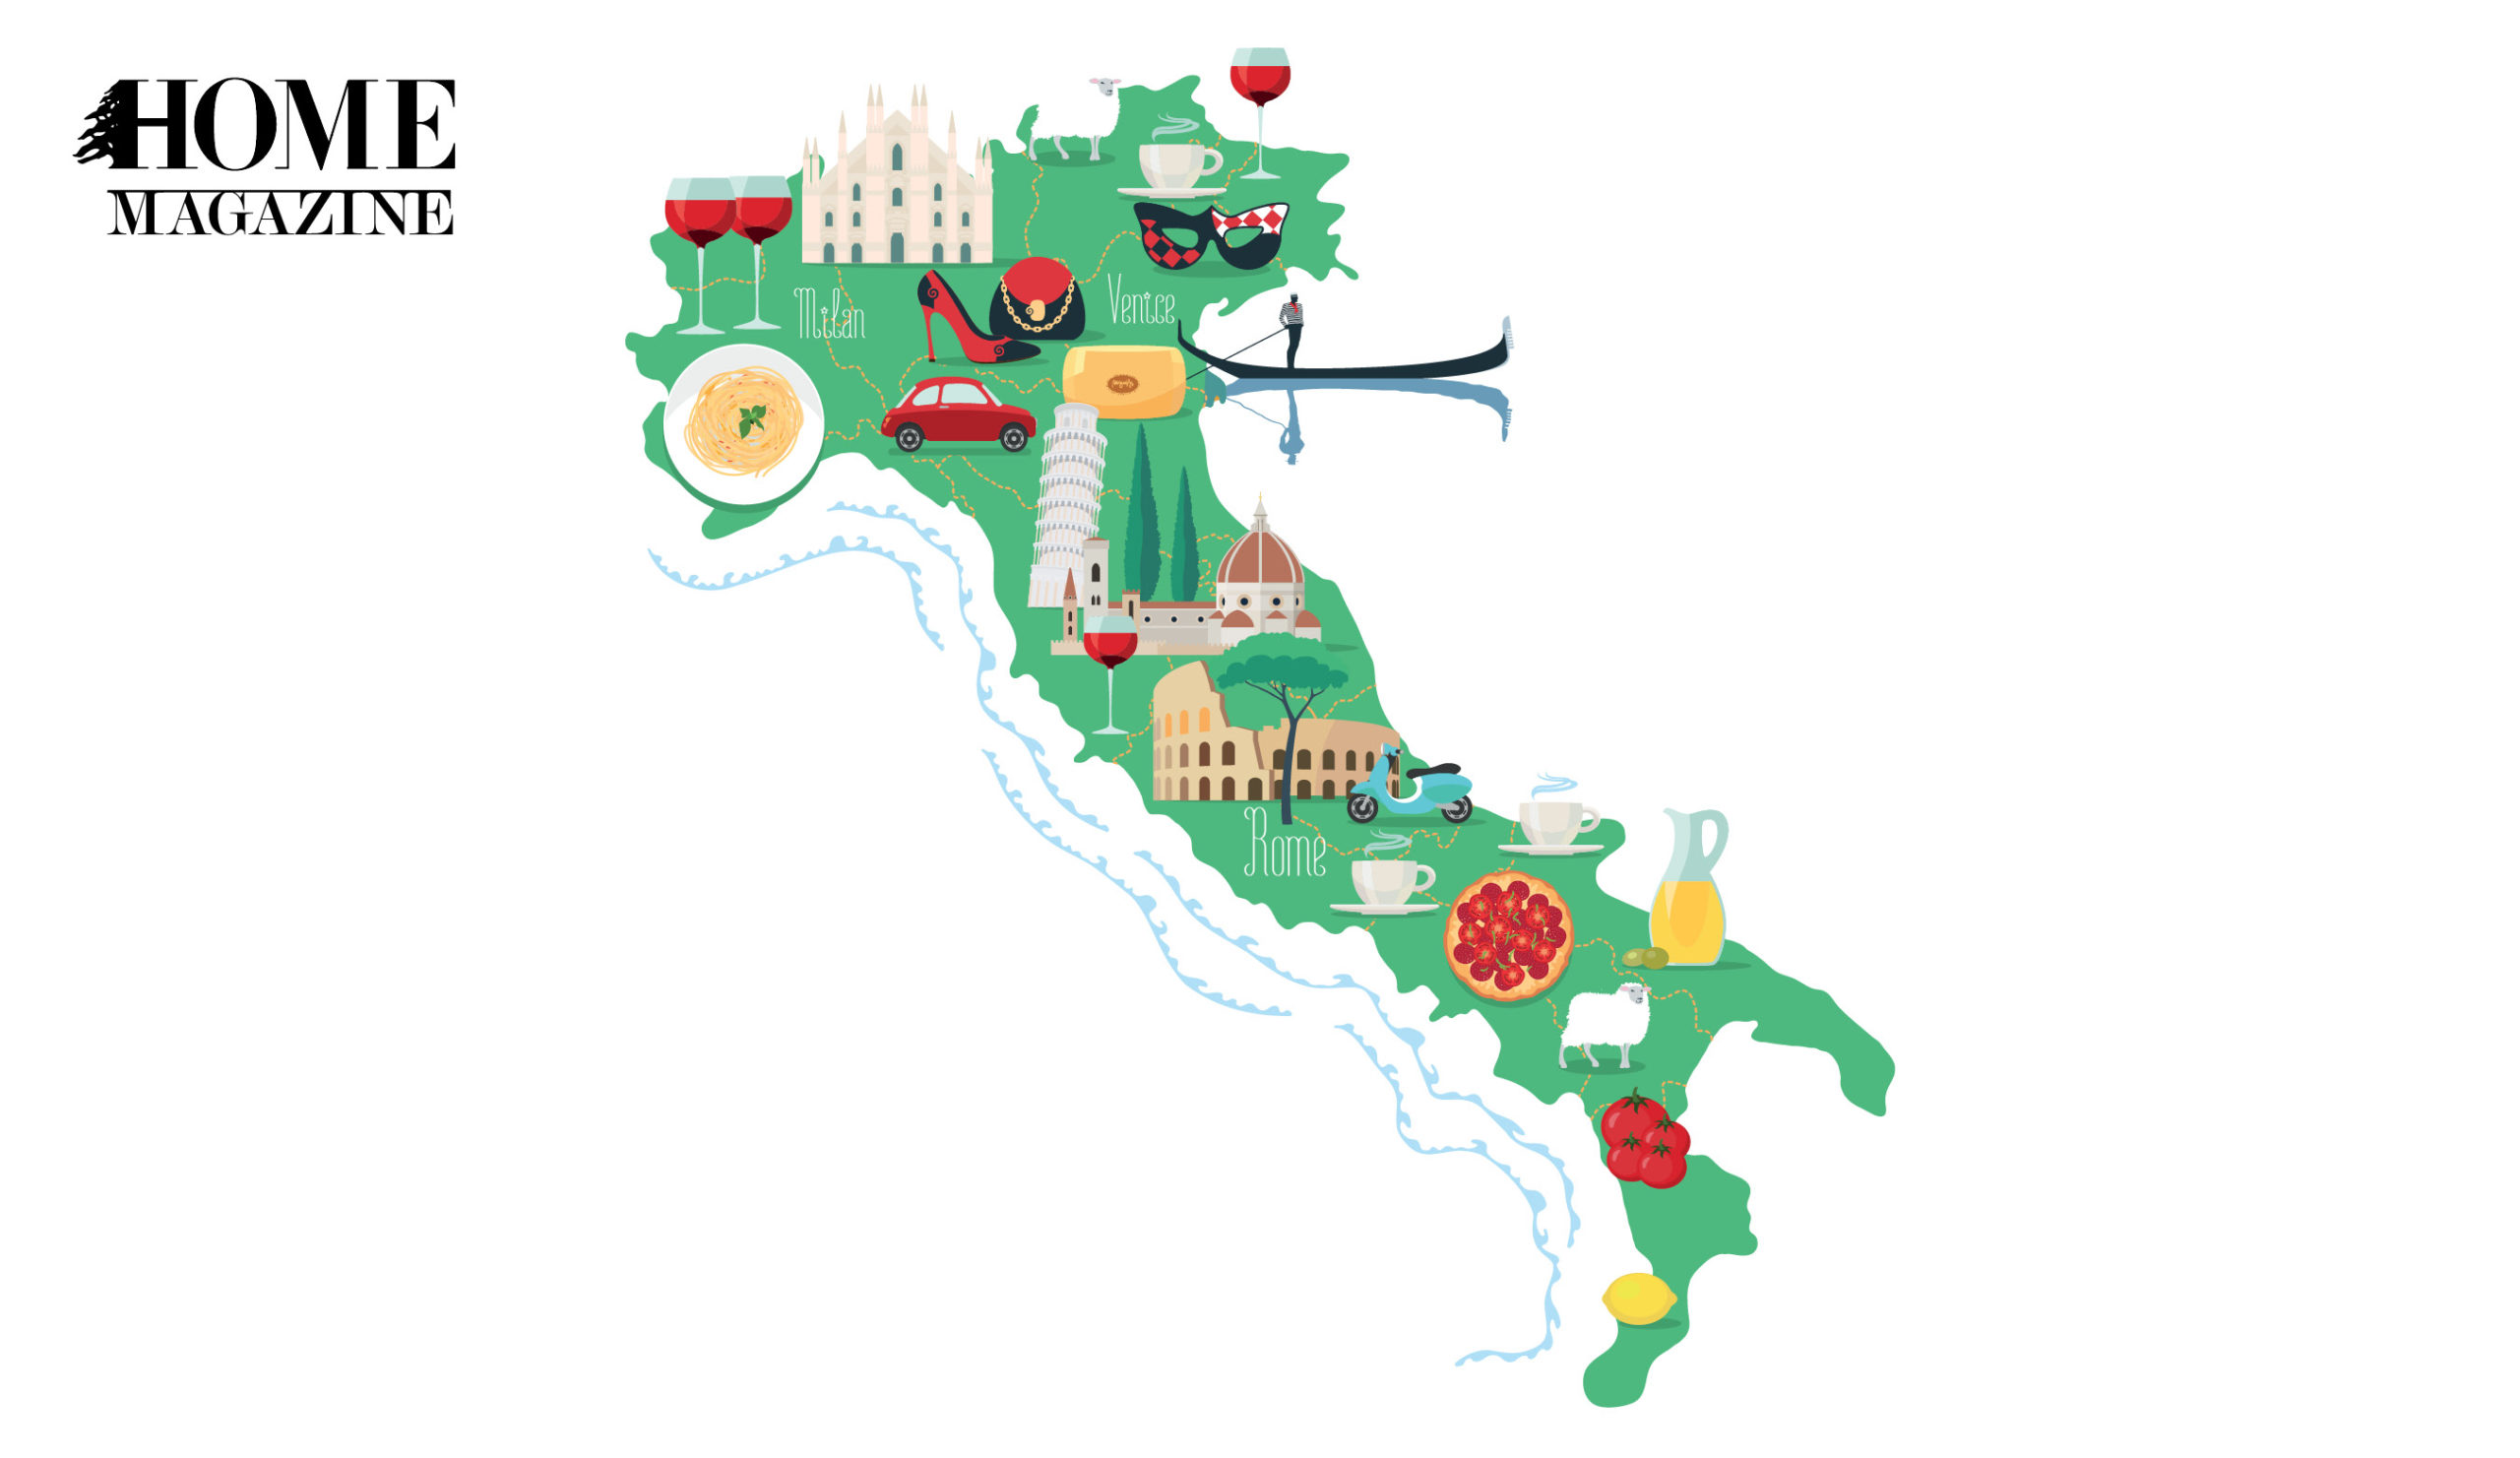 A green map with colored objects like wine glasses, a car, juice, tomato, pizza, pasta, temples and clothing